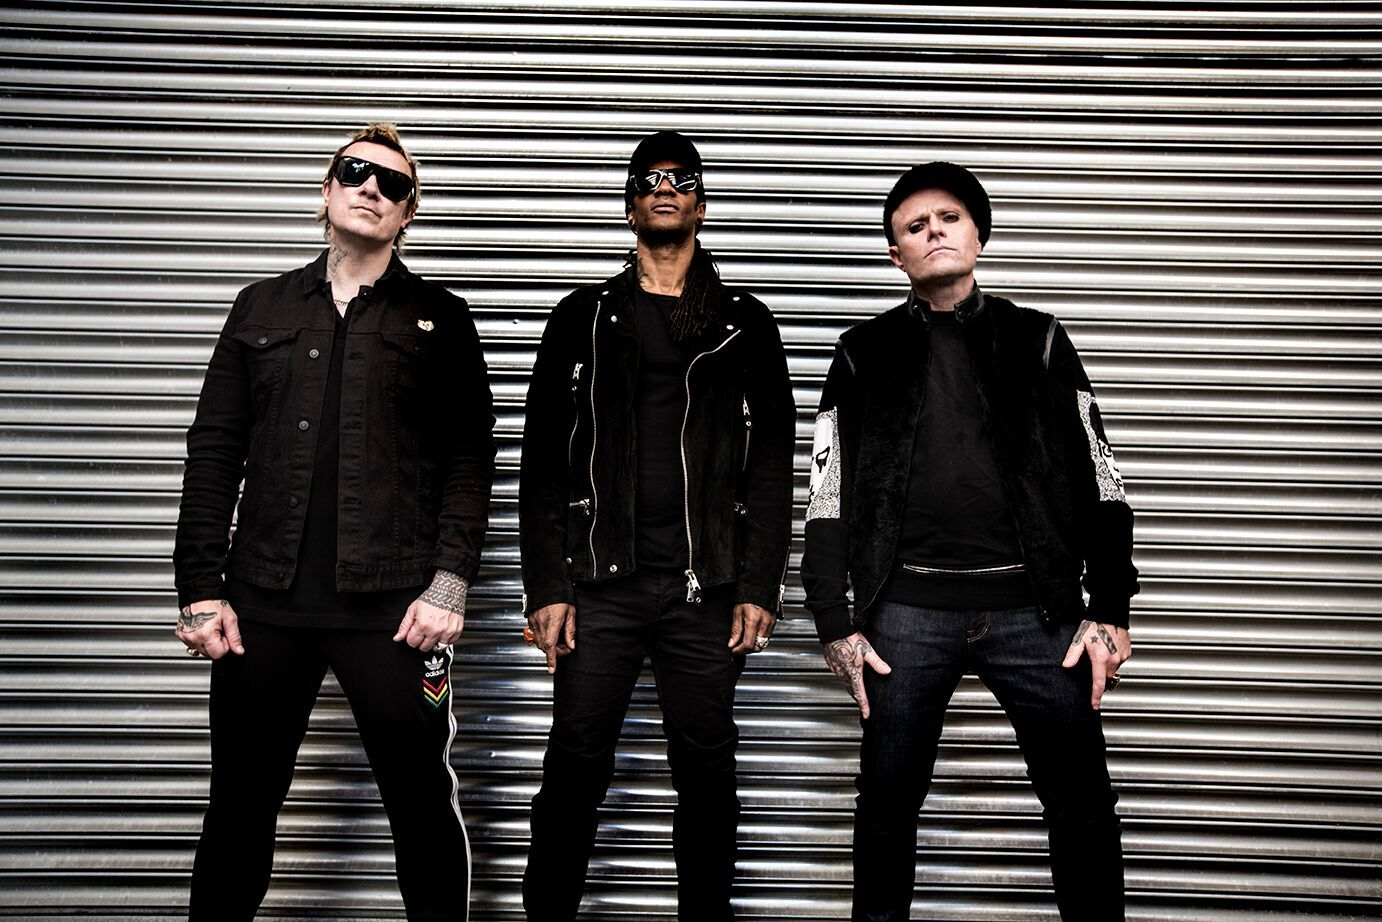 The Prodigy's Firestarters have still got it ahead of Perth show